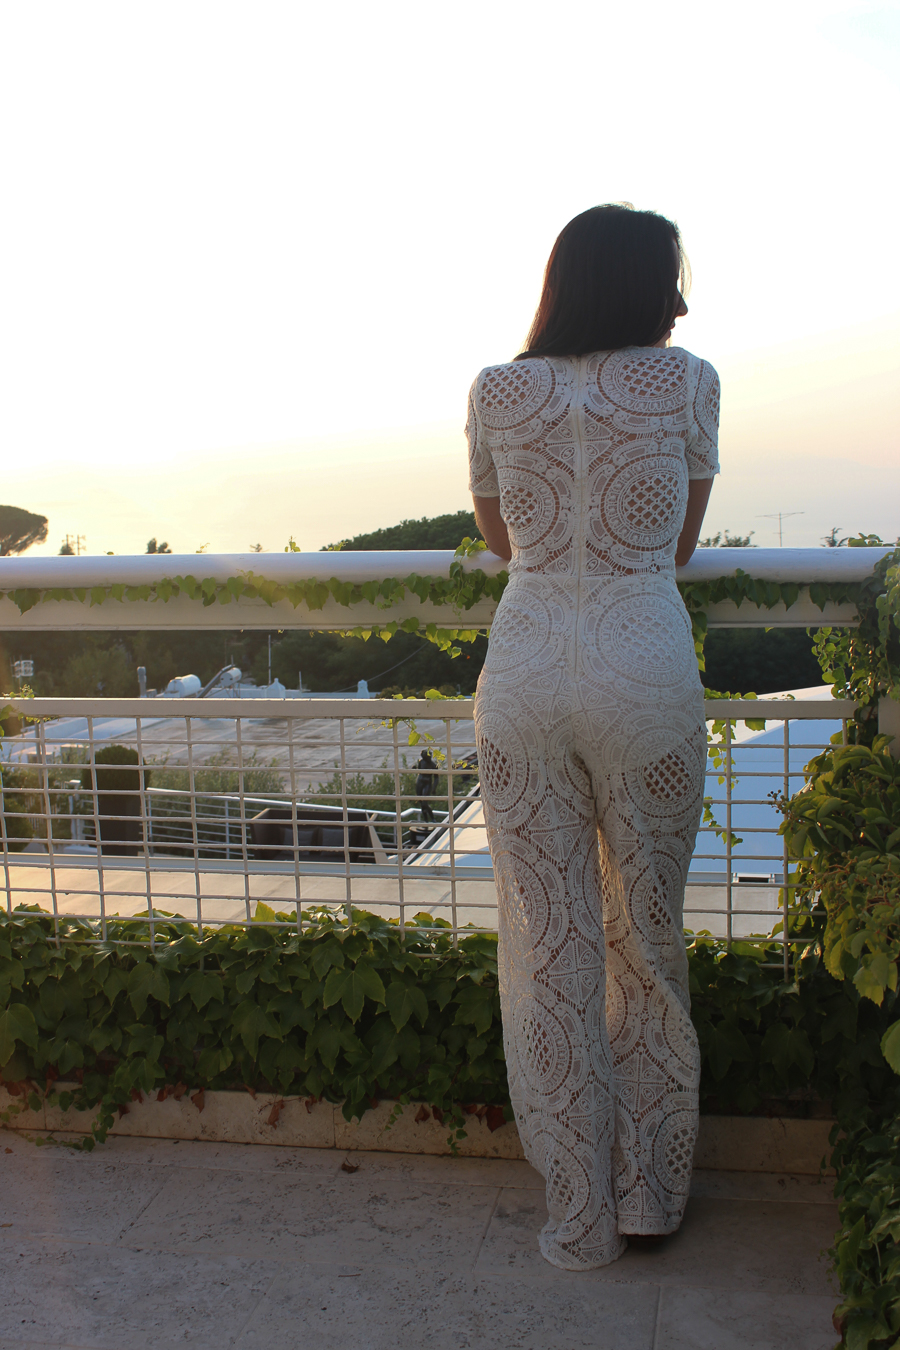 Sabrina Chakici - Clutch and Carry on - UK Fashion blogger & UK Travel Blogger - Capri Travel Blog - Capri Palace Hotel_-229